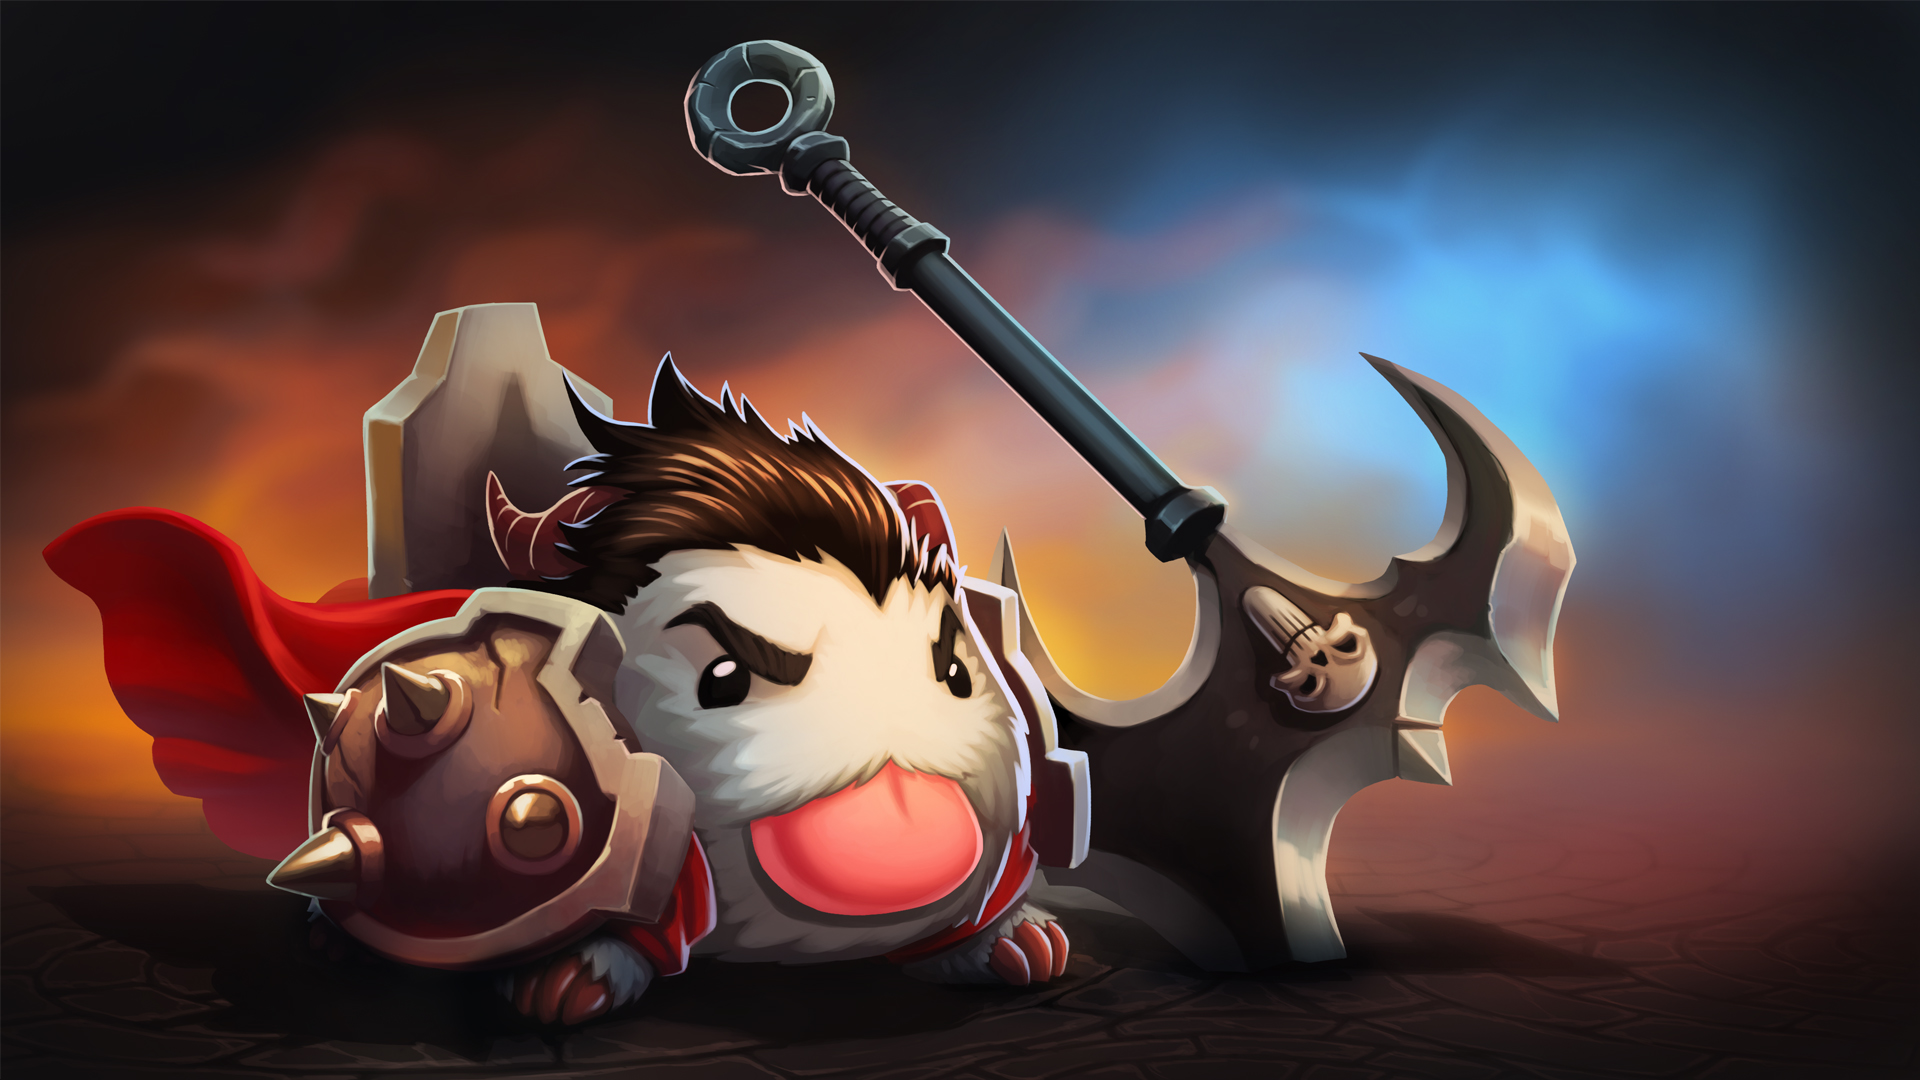 Darius Poro - Wallpapers HD